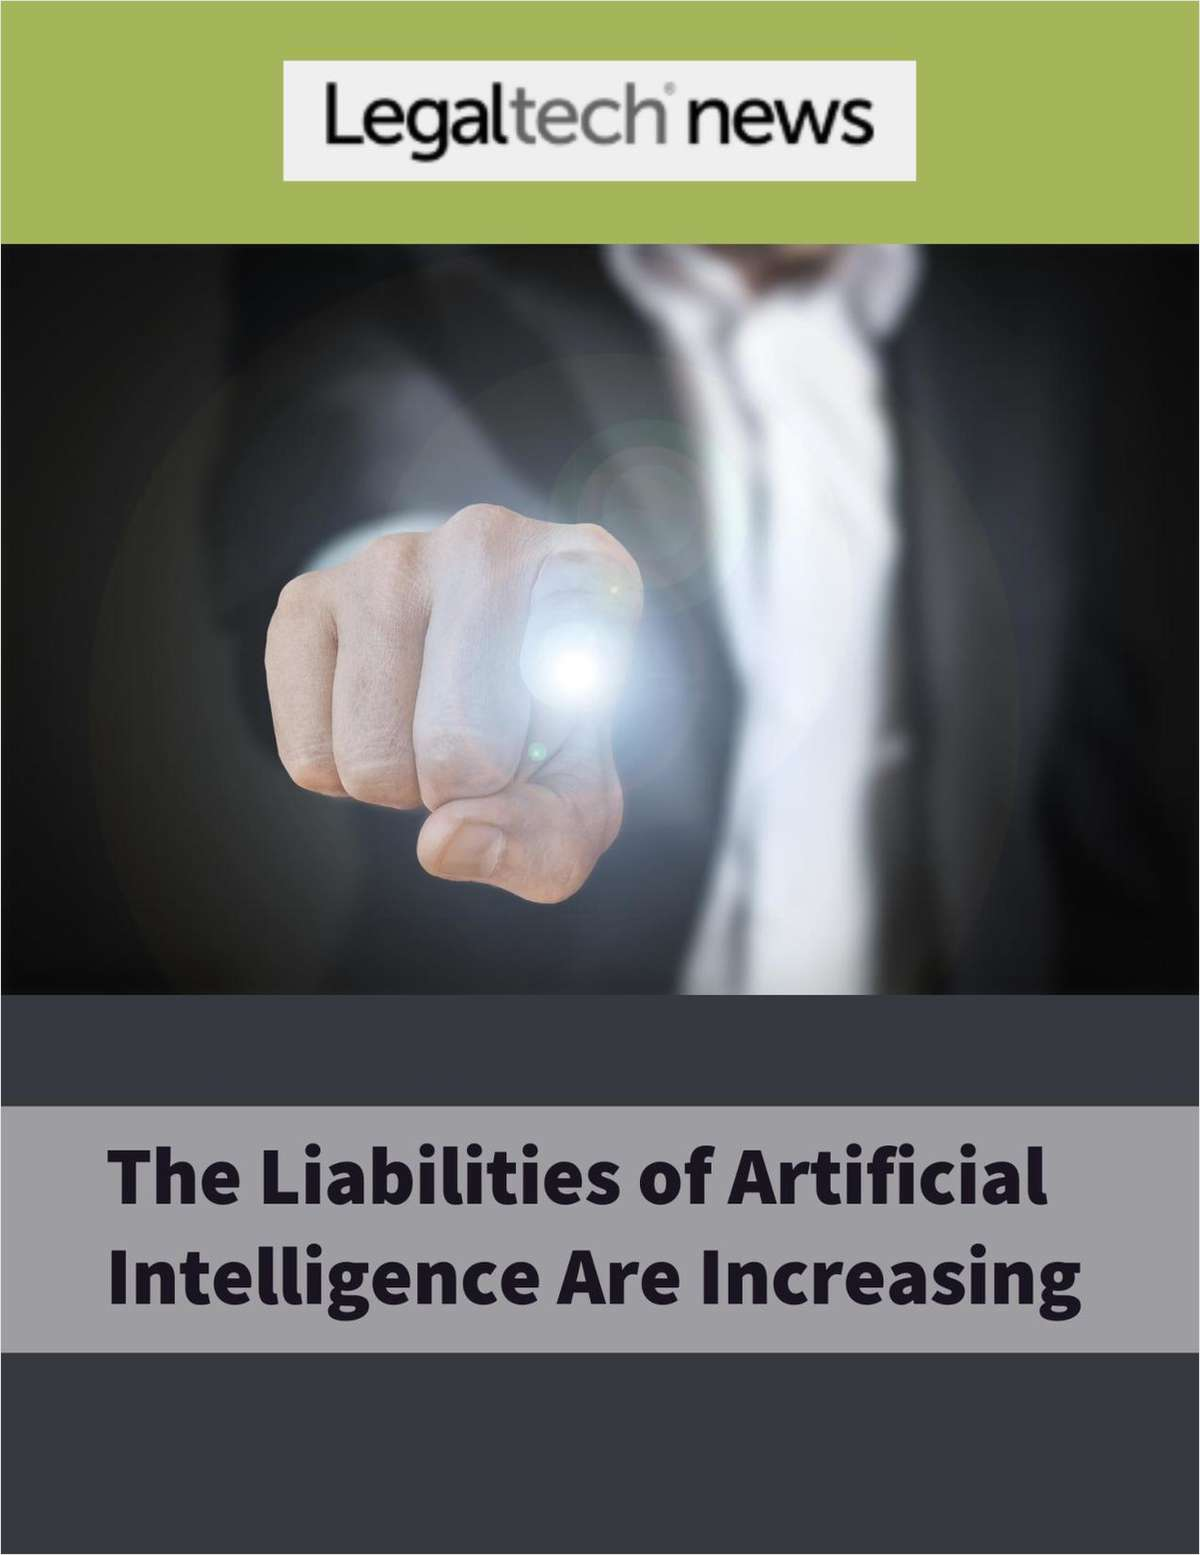 The Liabilities of Artificial Intelligence Are Increasing